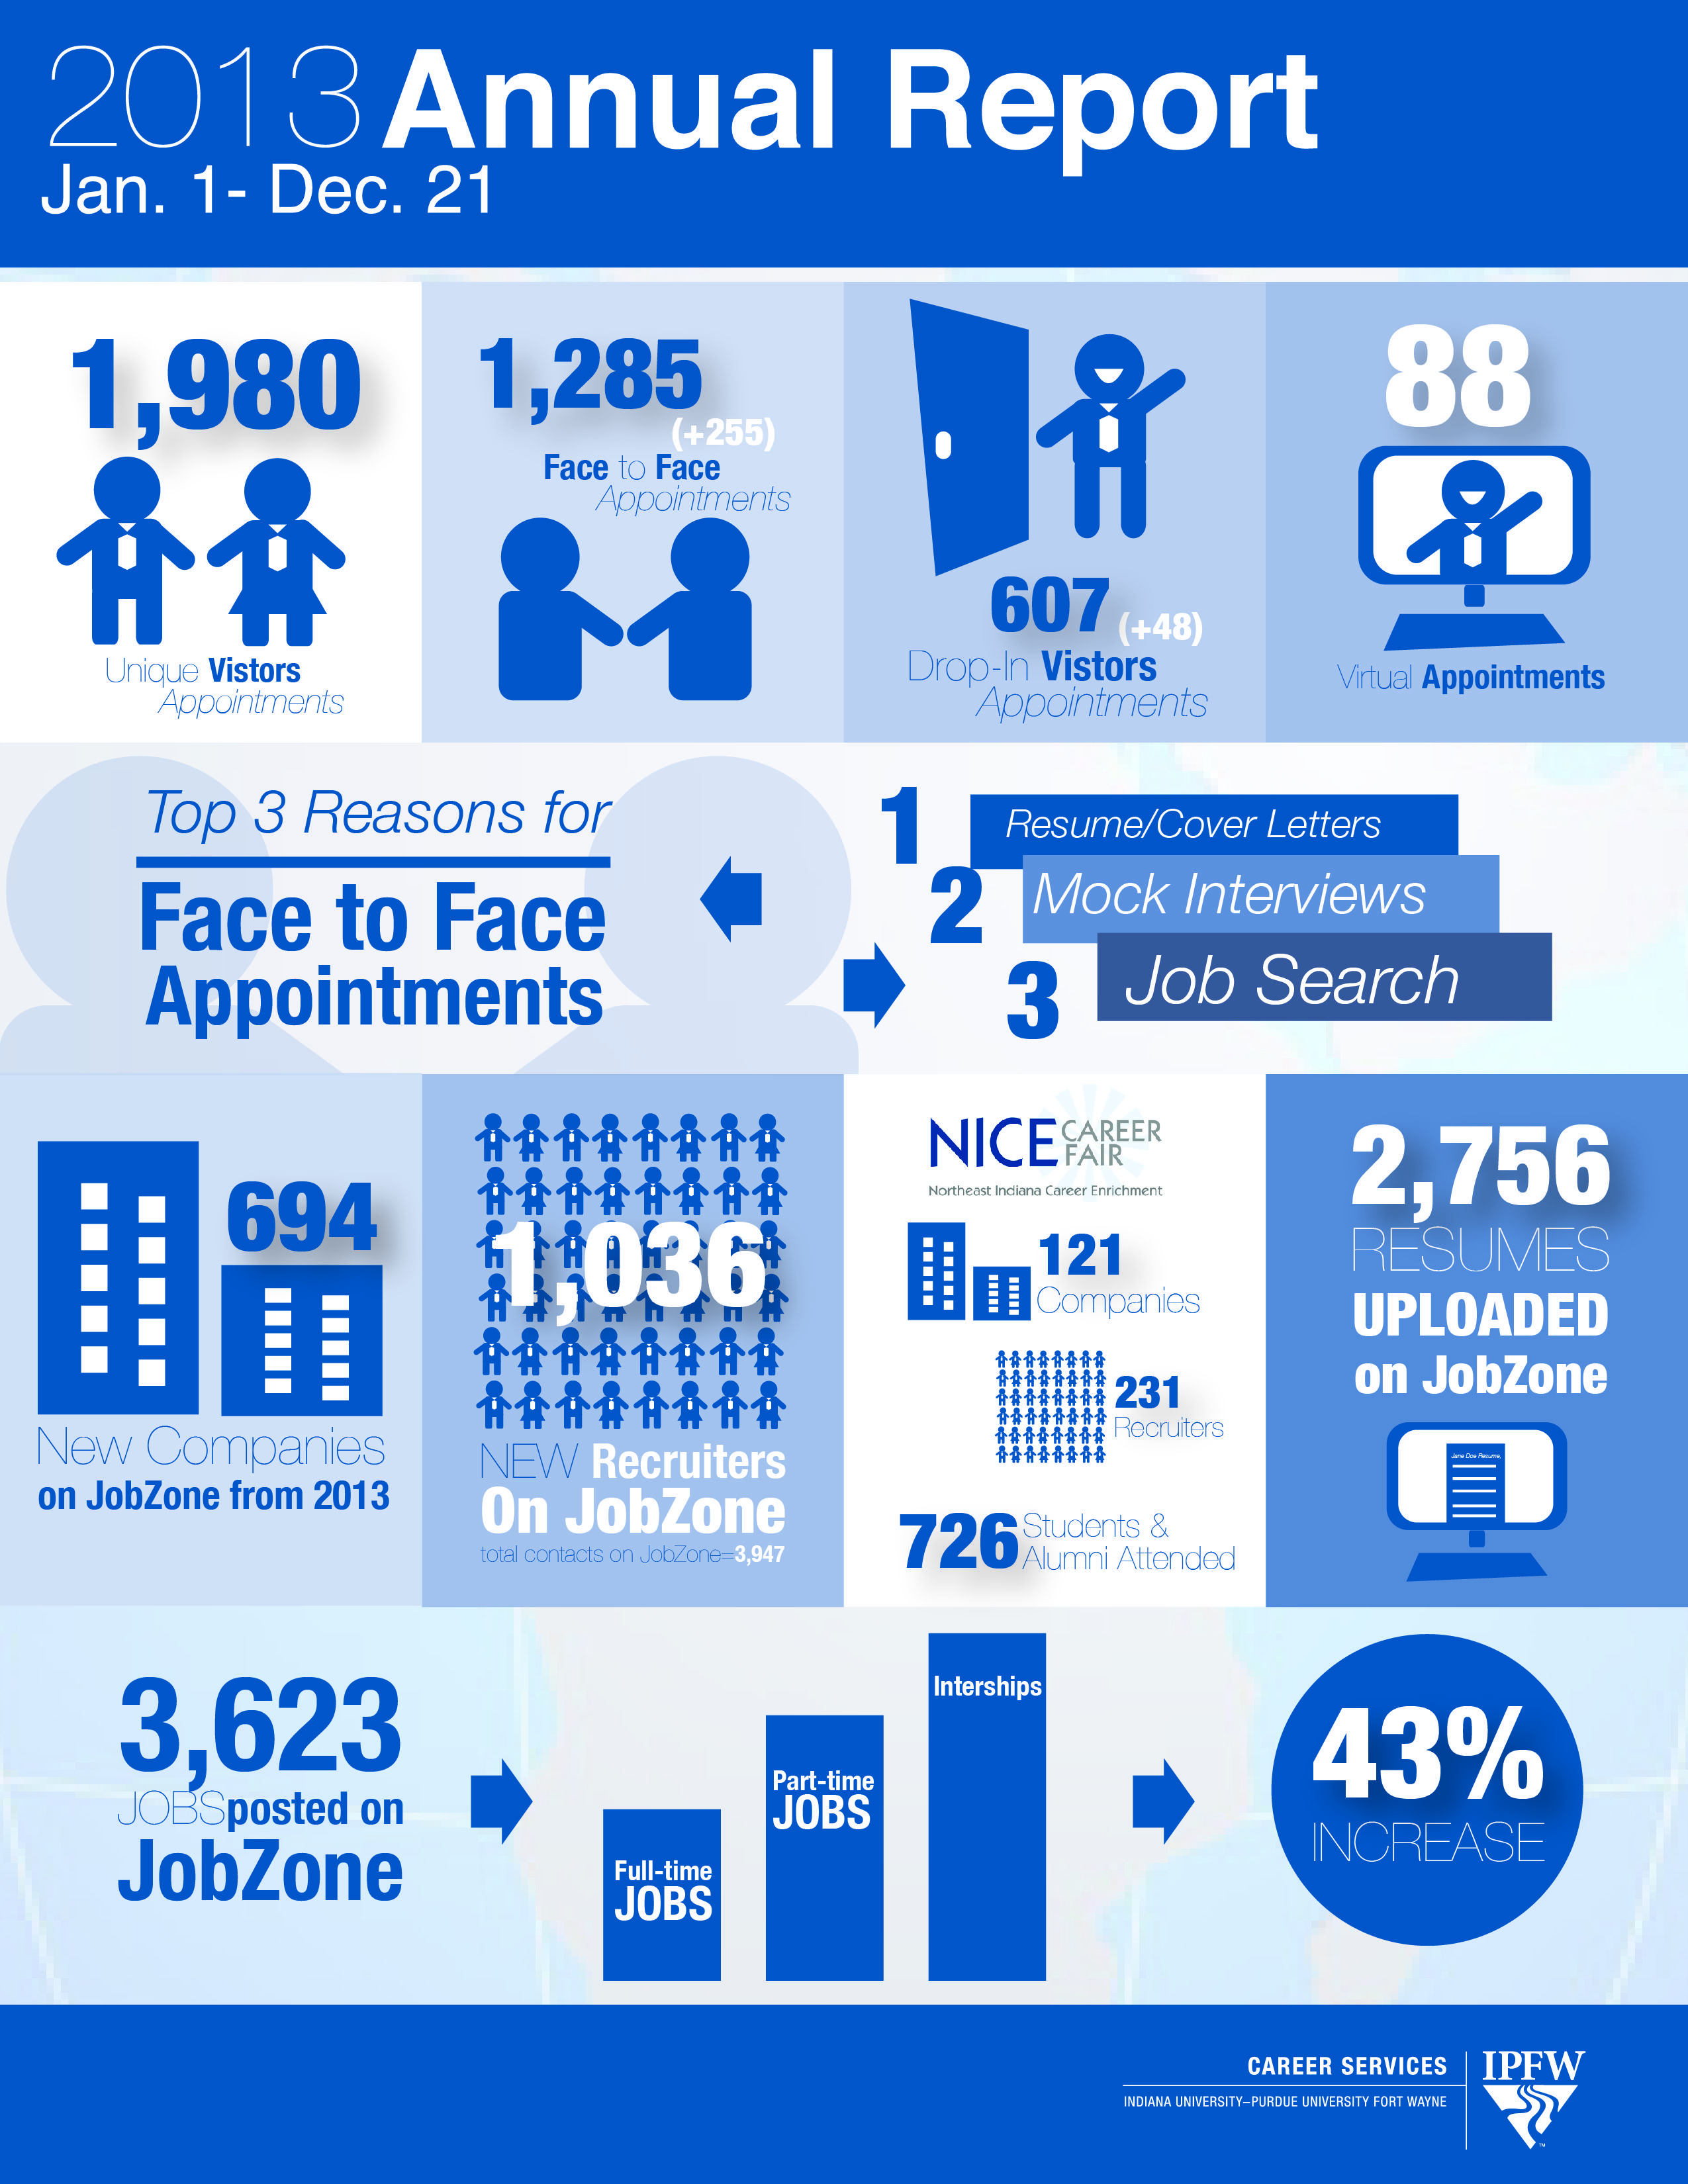 Ipfw Career Services Annual Report  The Major Story